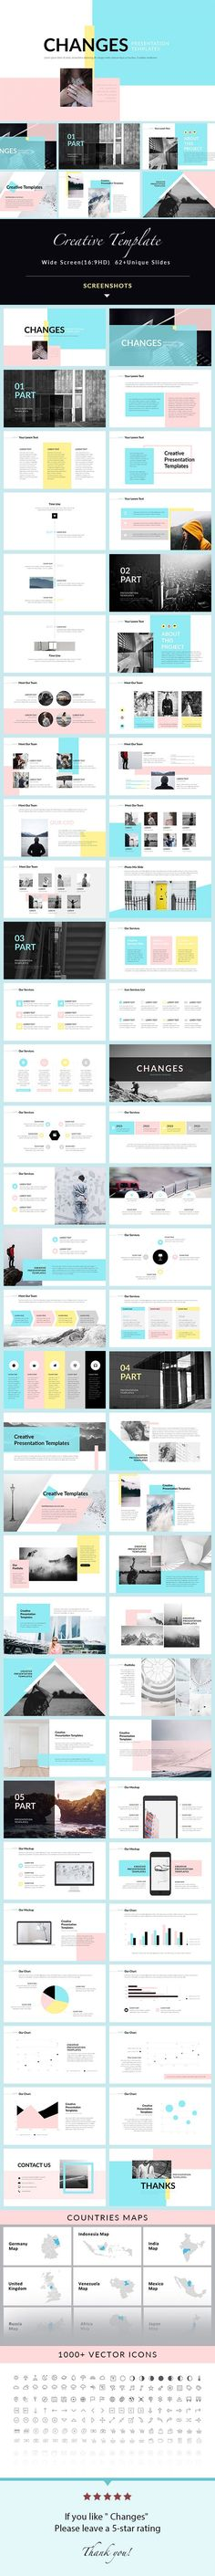 Changes - PowerPoint Presentation Template - Creative PowerPoint Templates